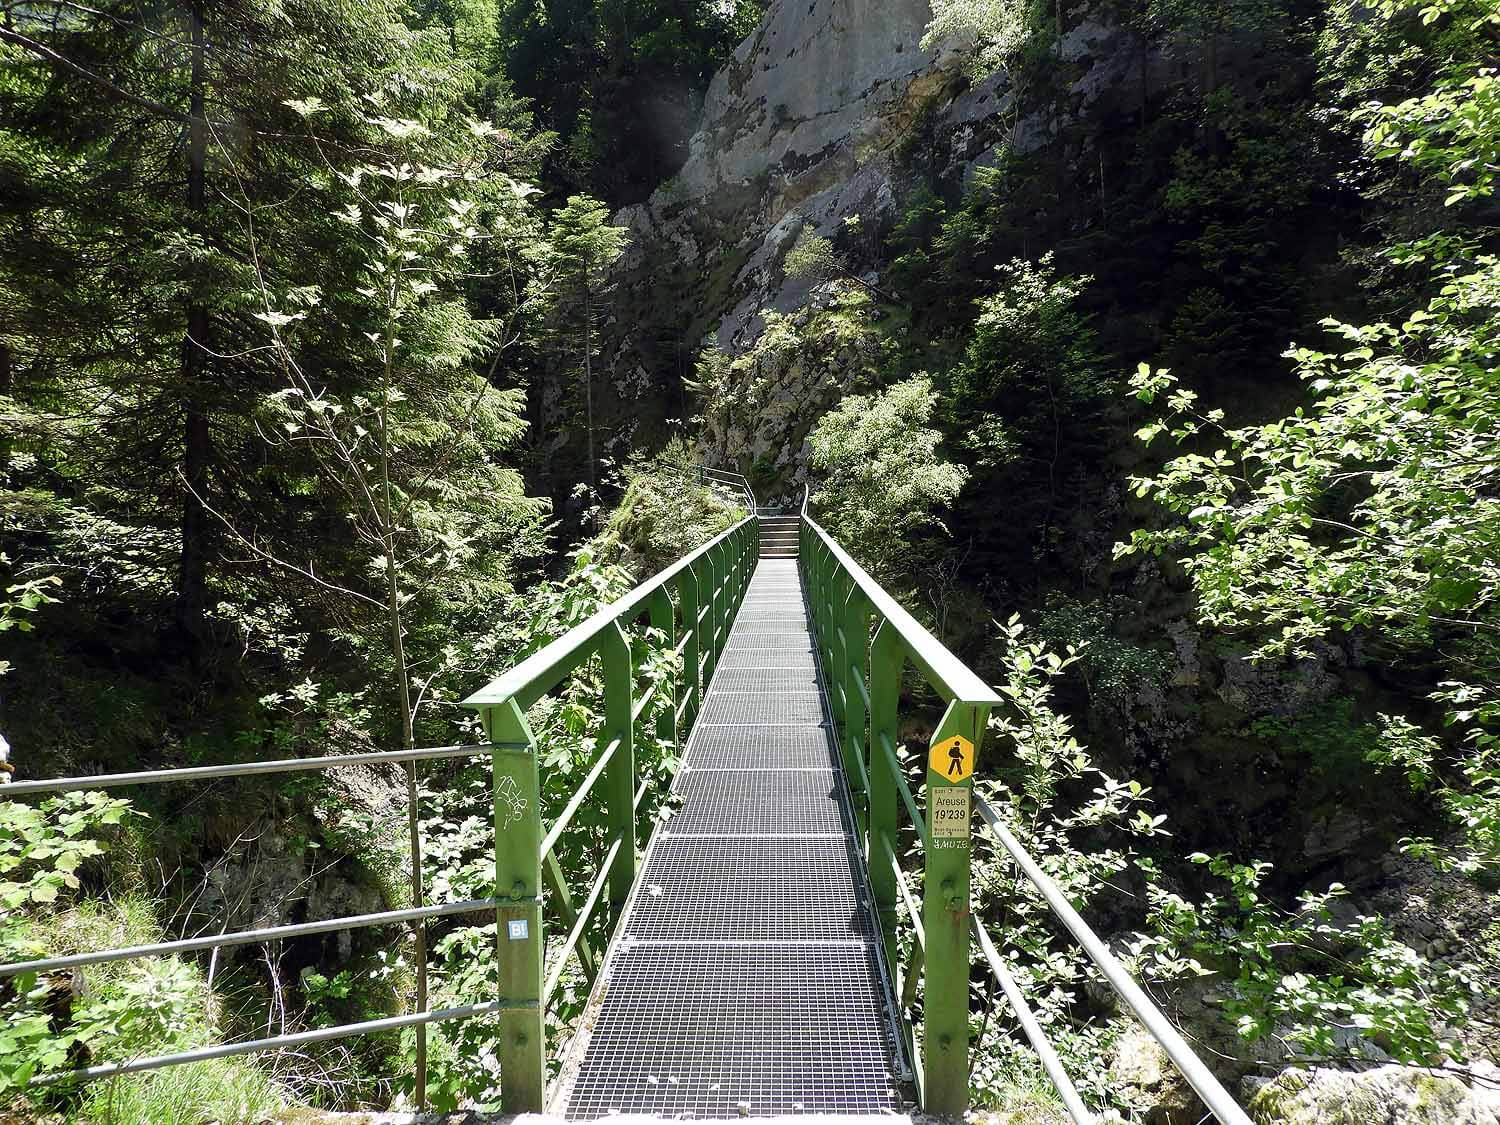 switzerland-saut-pont-brot-hike-walk-hiking-metal-bridge.JPG